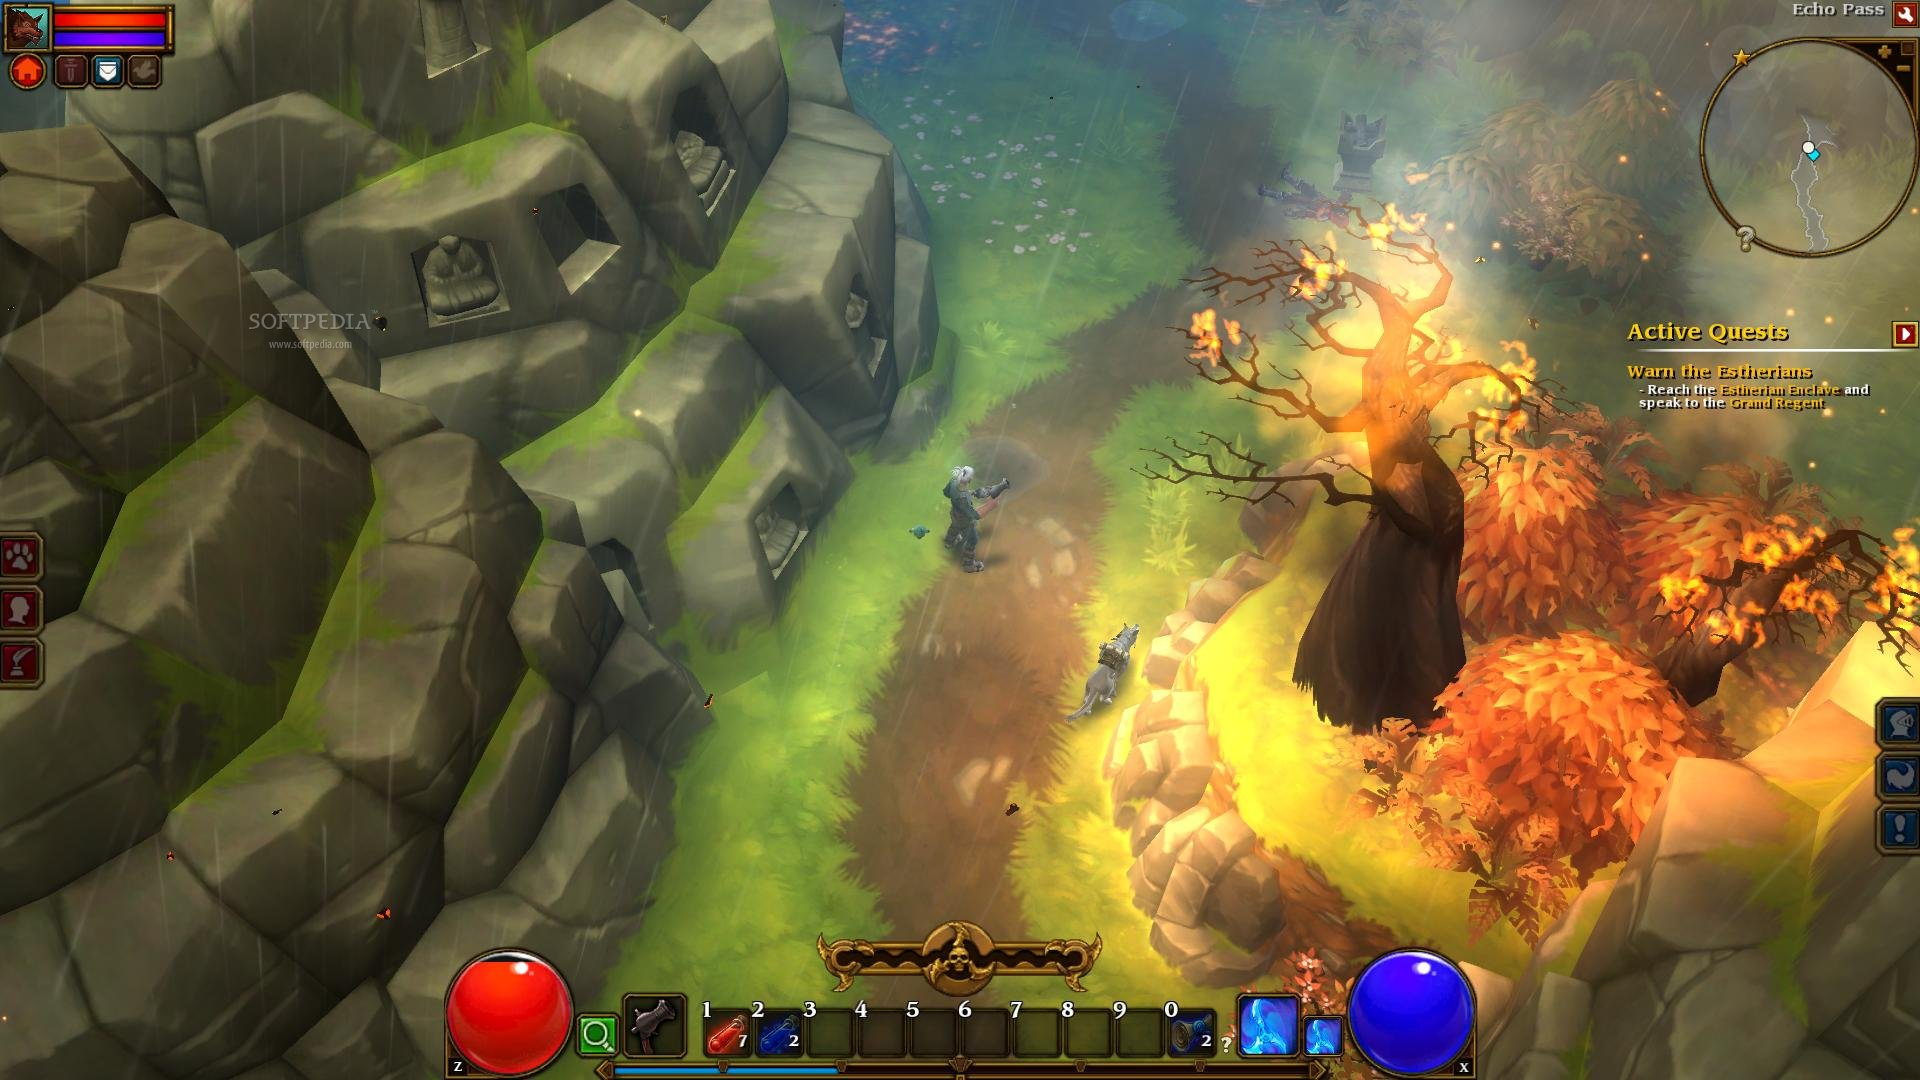 torchlight 2 keygen - torchlight 2 keygen